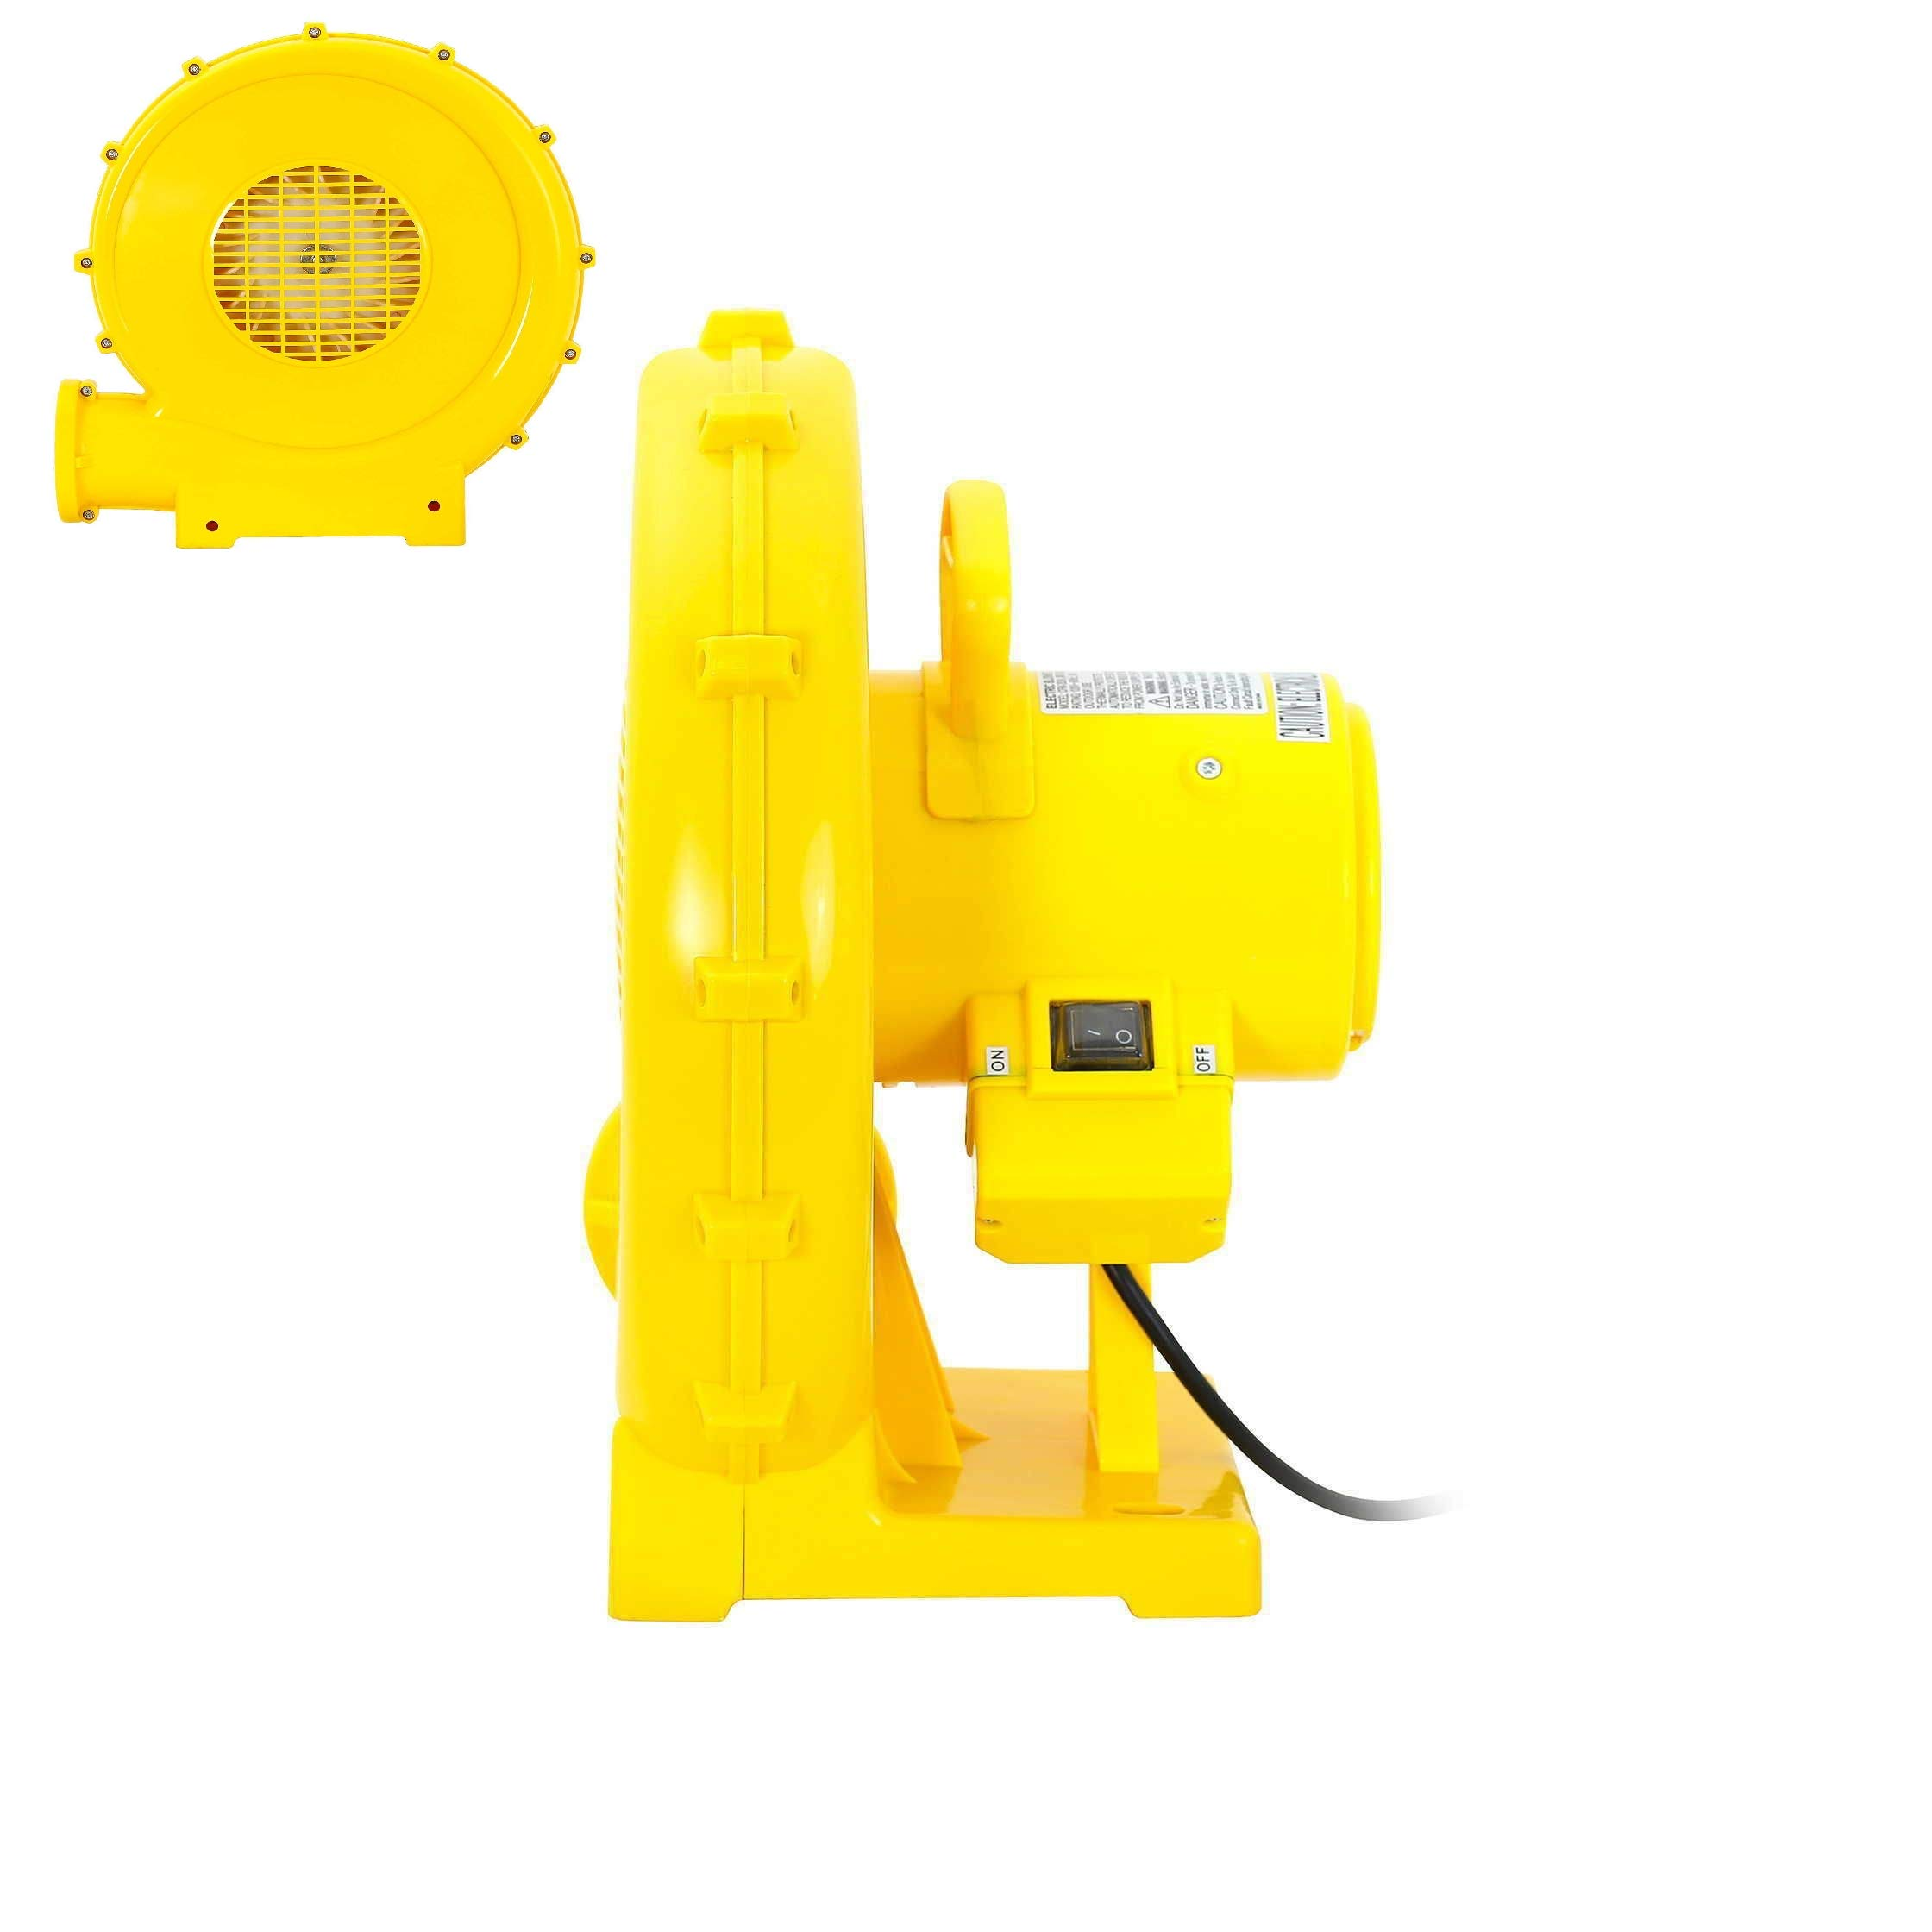 Reliable Safe Inflatable Bounce House Air Pump Blower Fan 950Watt Quick Arrive